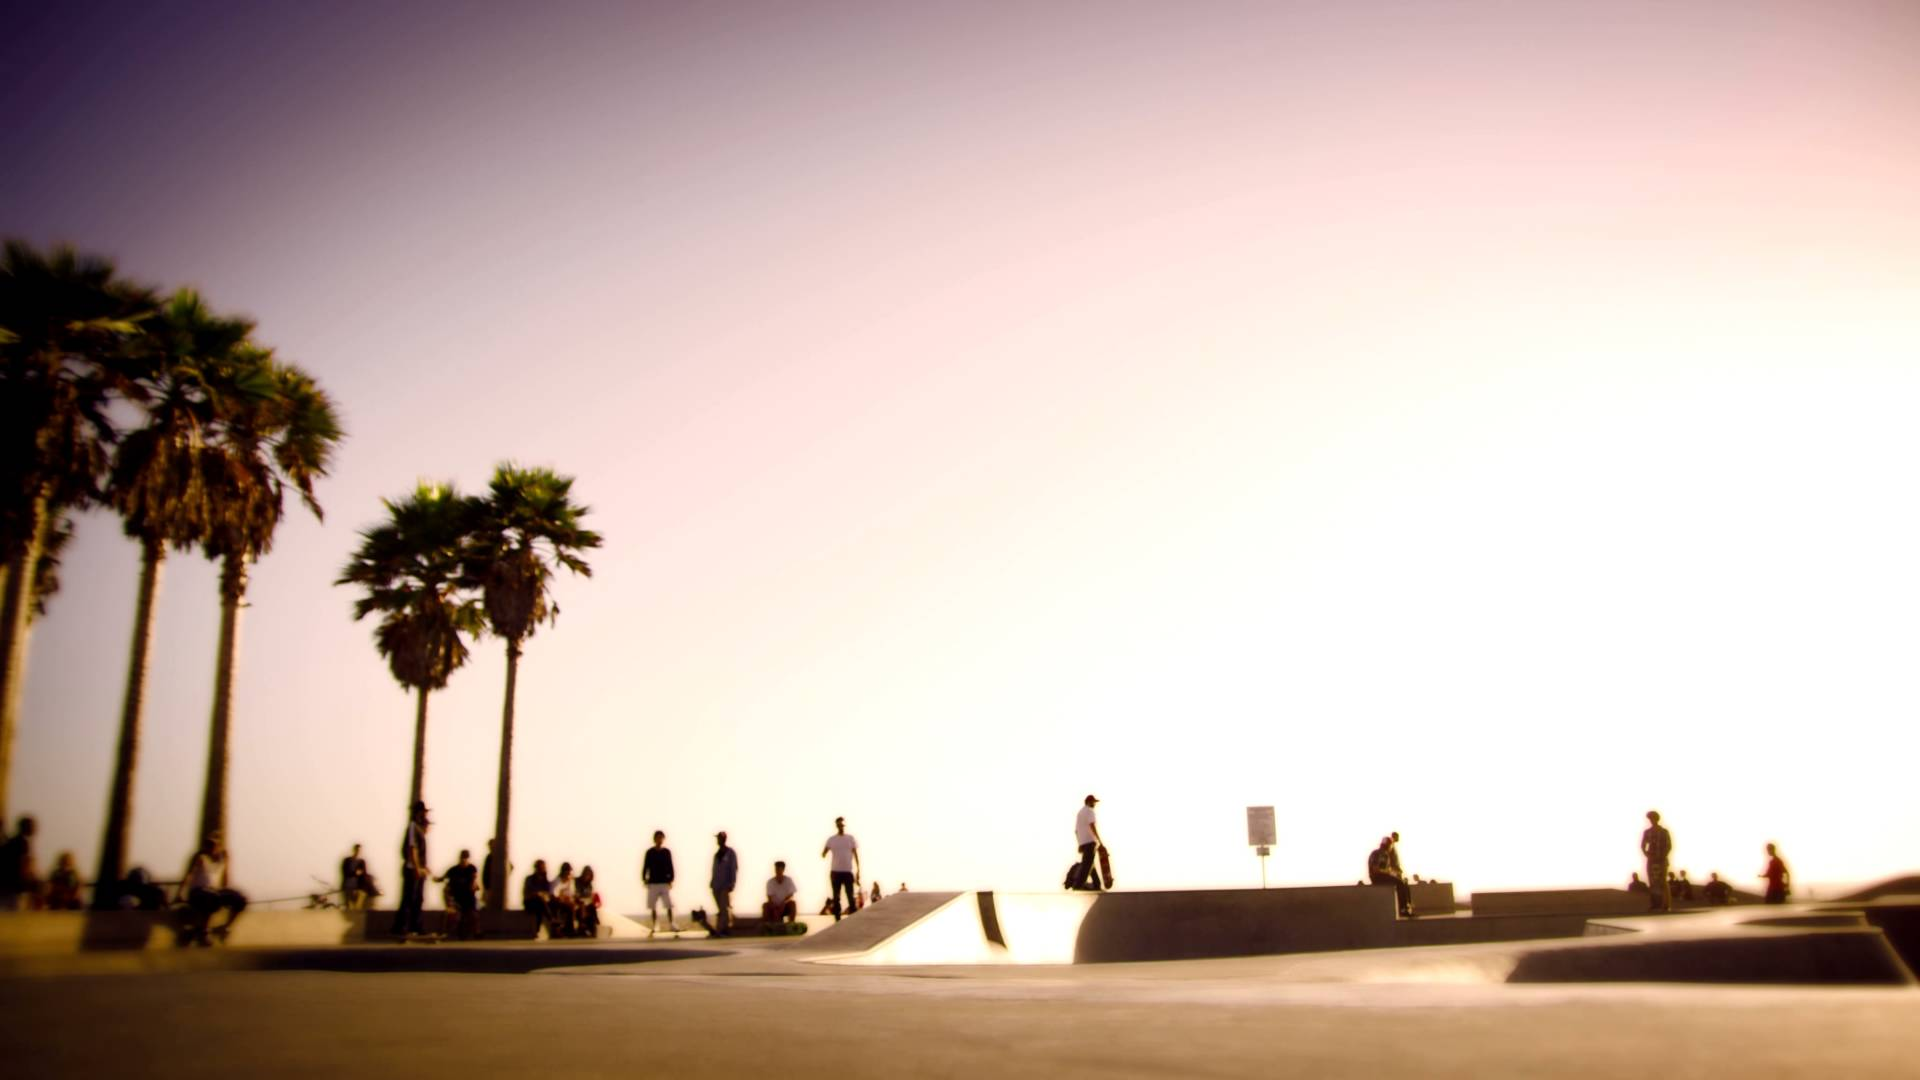 Venice Beach California Wallpaper images 1920x1080